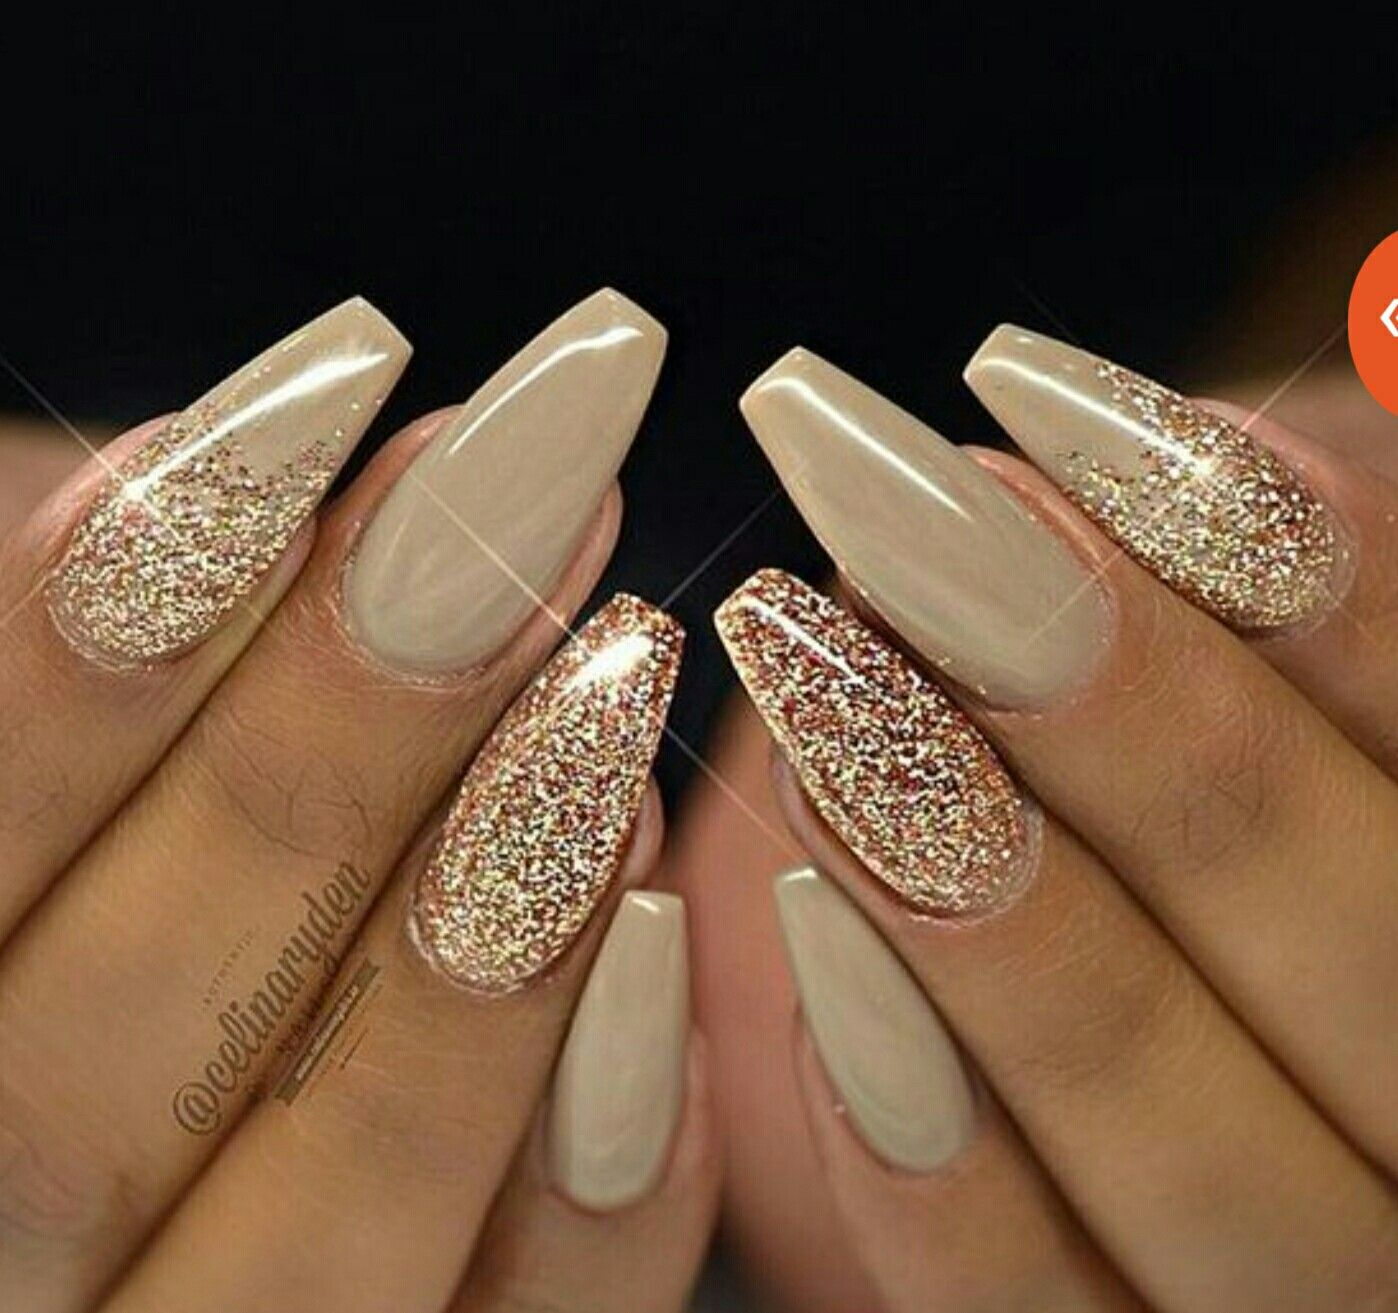 Pin by courteney greer on goldnude nail polish pinterest nude amazing nail art designs for 2016 related postsnice easy nail art designs art designs trends for nails art design ideas best nail art ideas for art top 10 prinsesfo Gallery